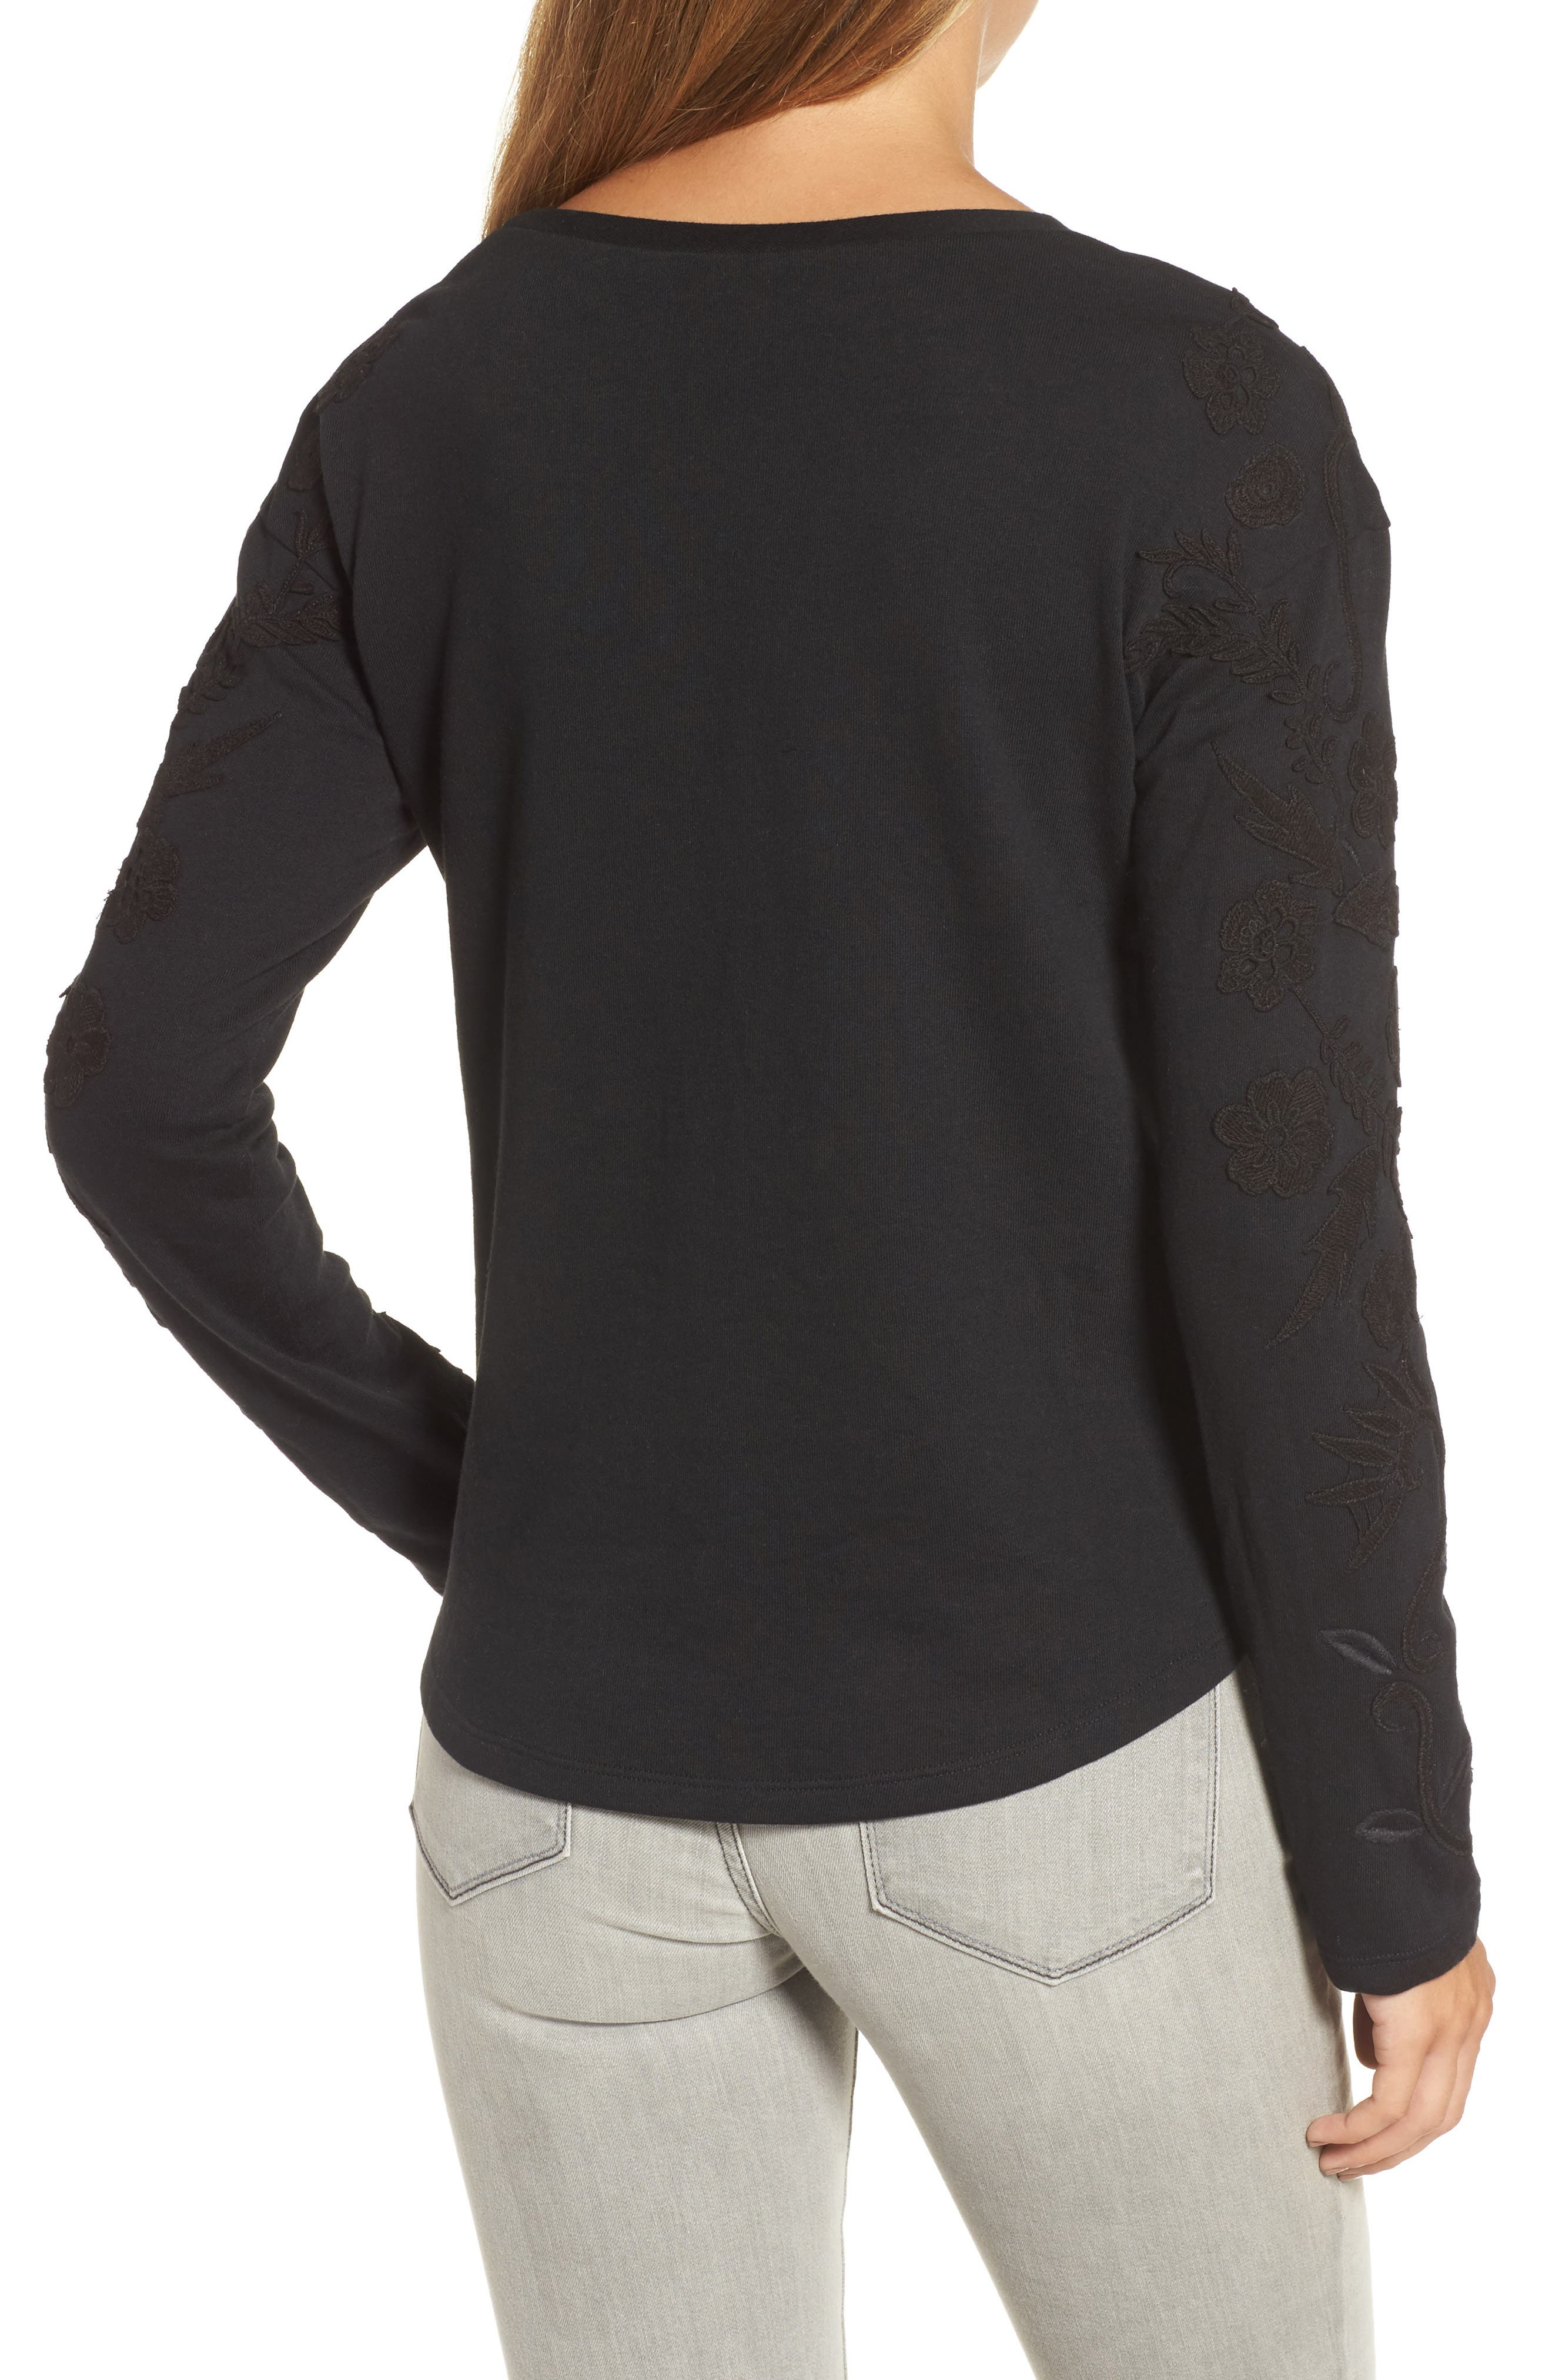 Embroidered Sleeve Sweatshirt,                             Alternate thumbnail 2, color,                             001